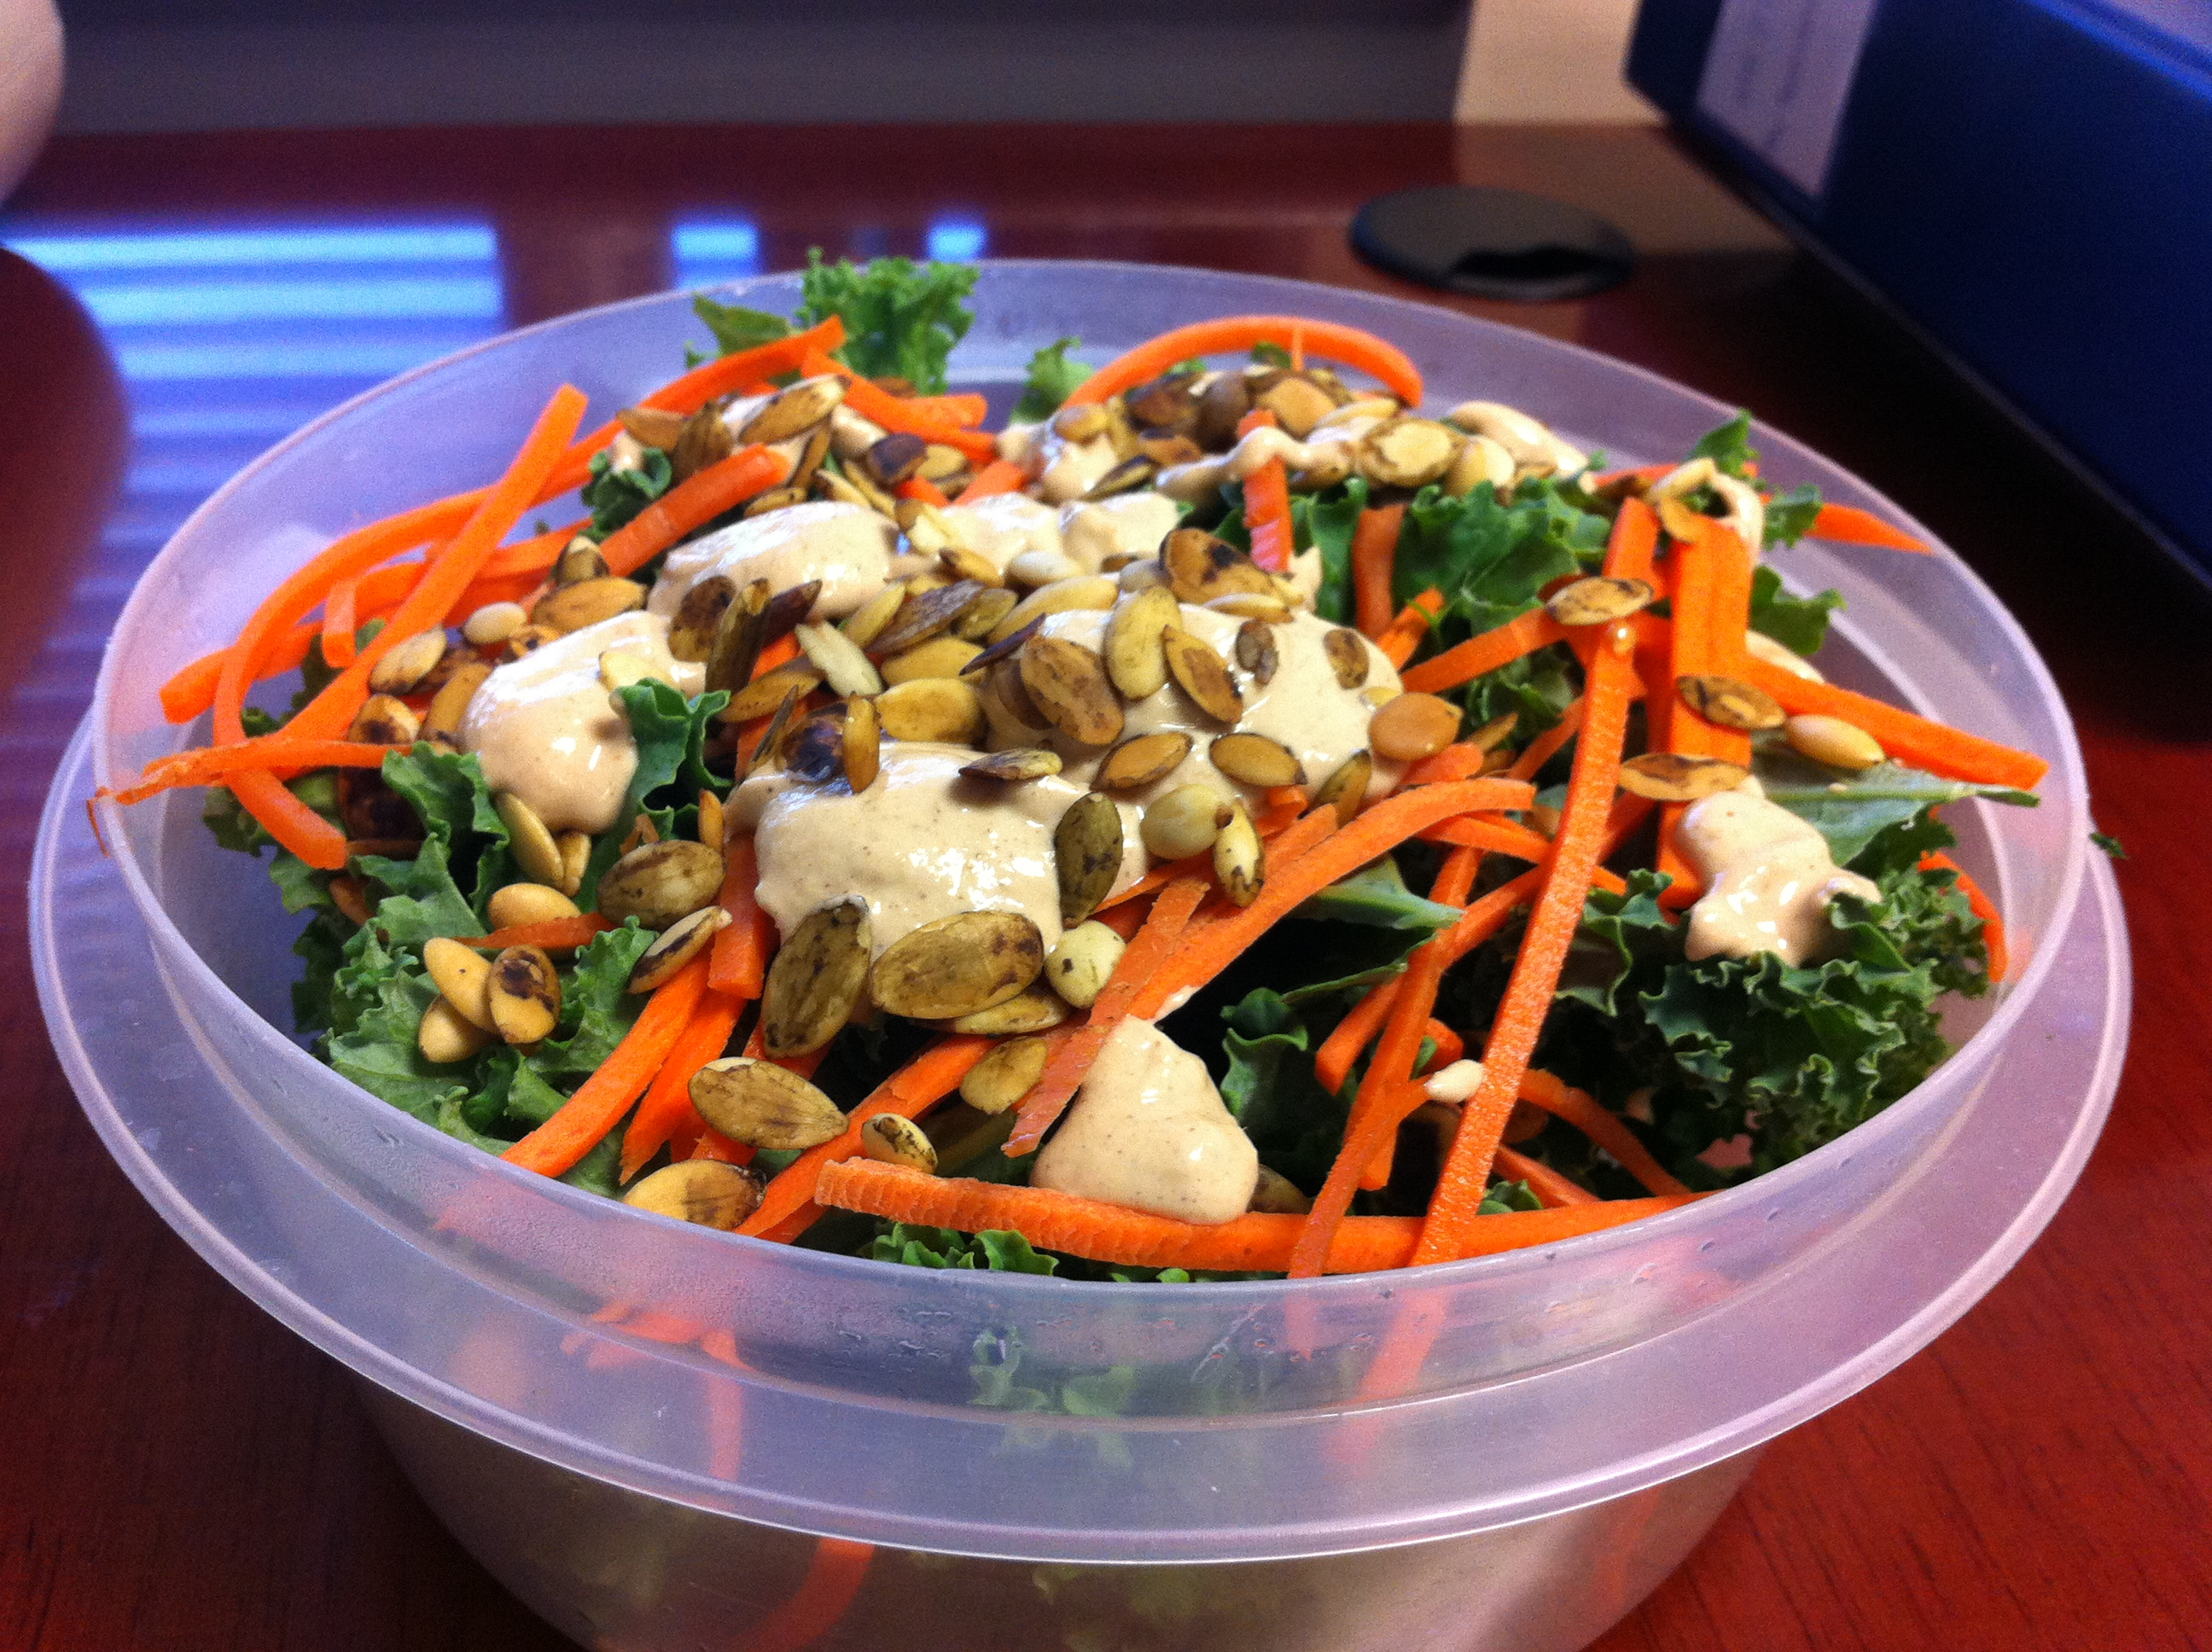 A big bowl of kale with shredded carrots, pumpkin seeds, and my favorite sesame mustard dressing.